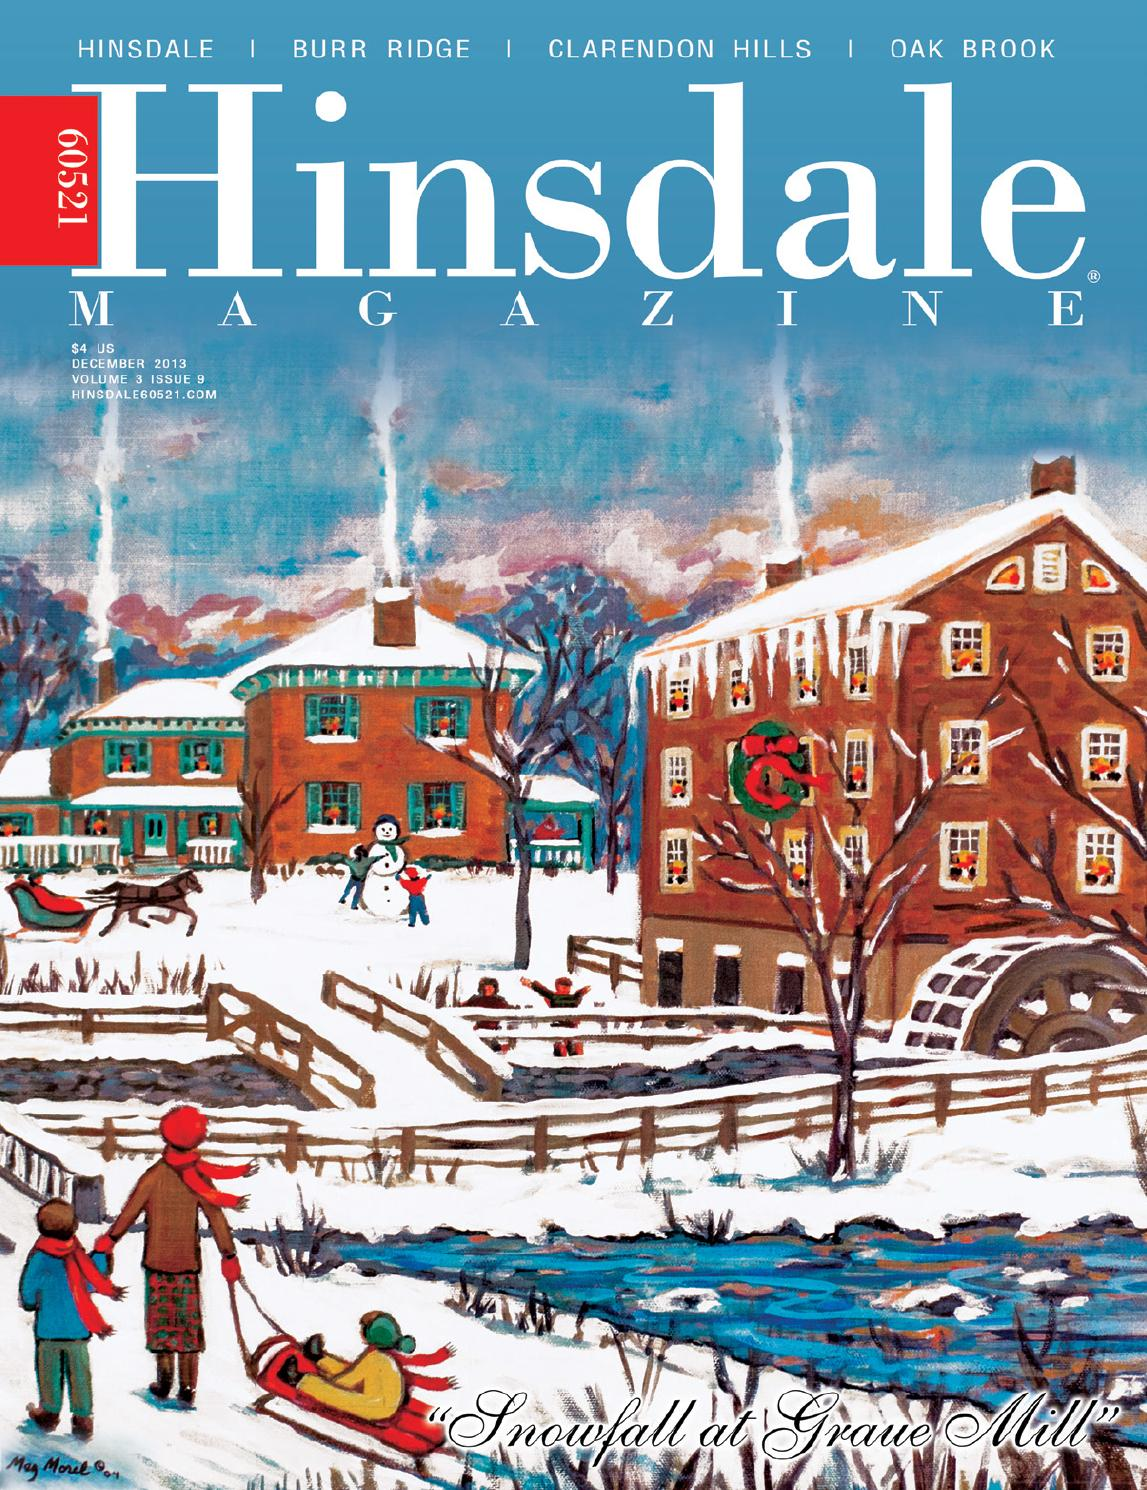 Hinsdale Magazine December 2013 by www.Hinsdale60521.com - issuu